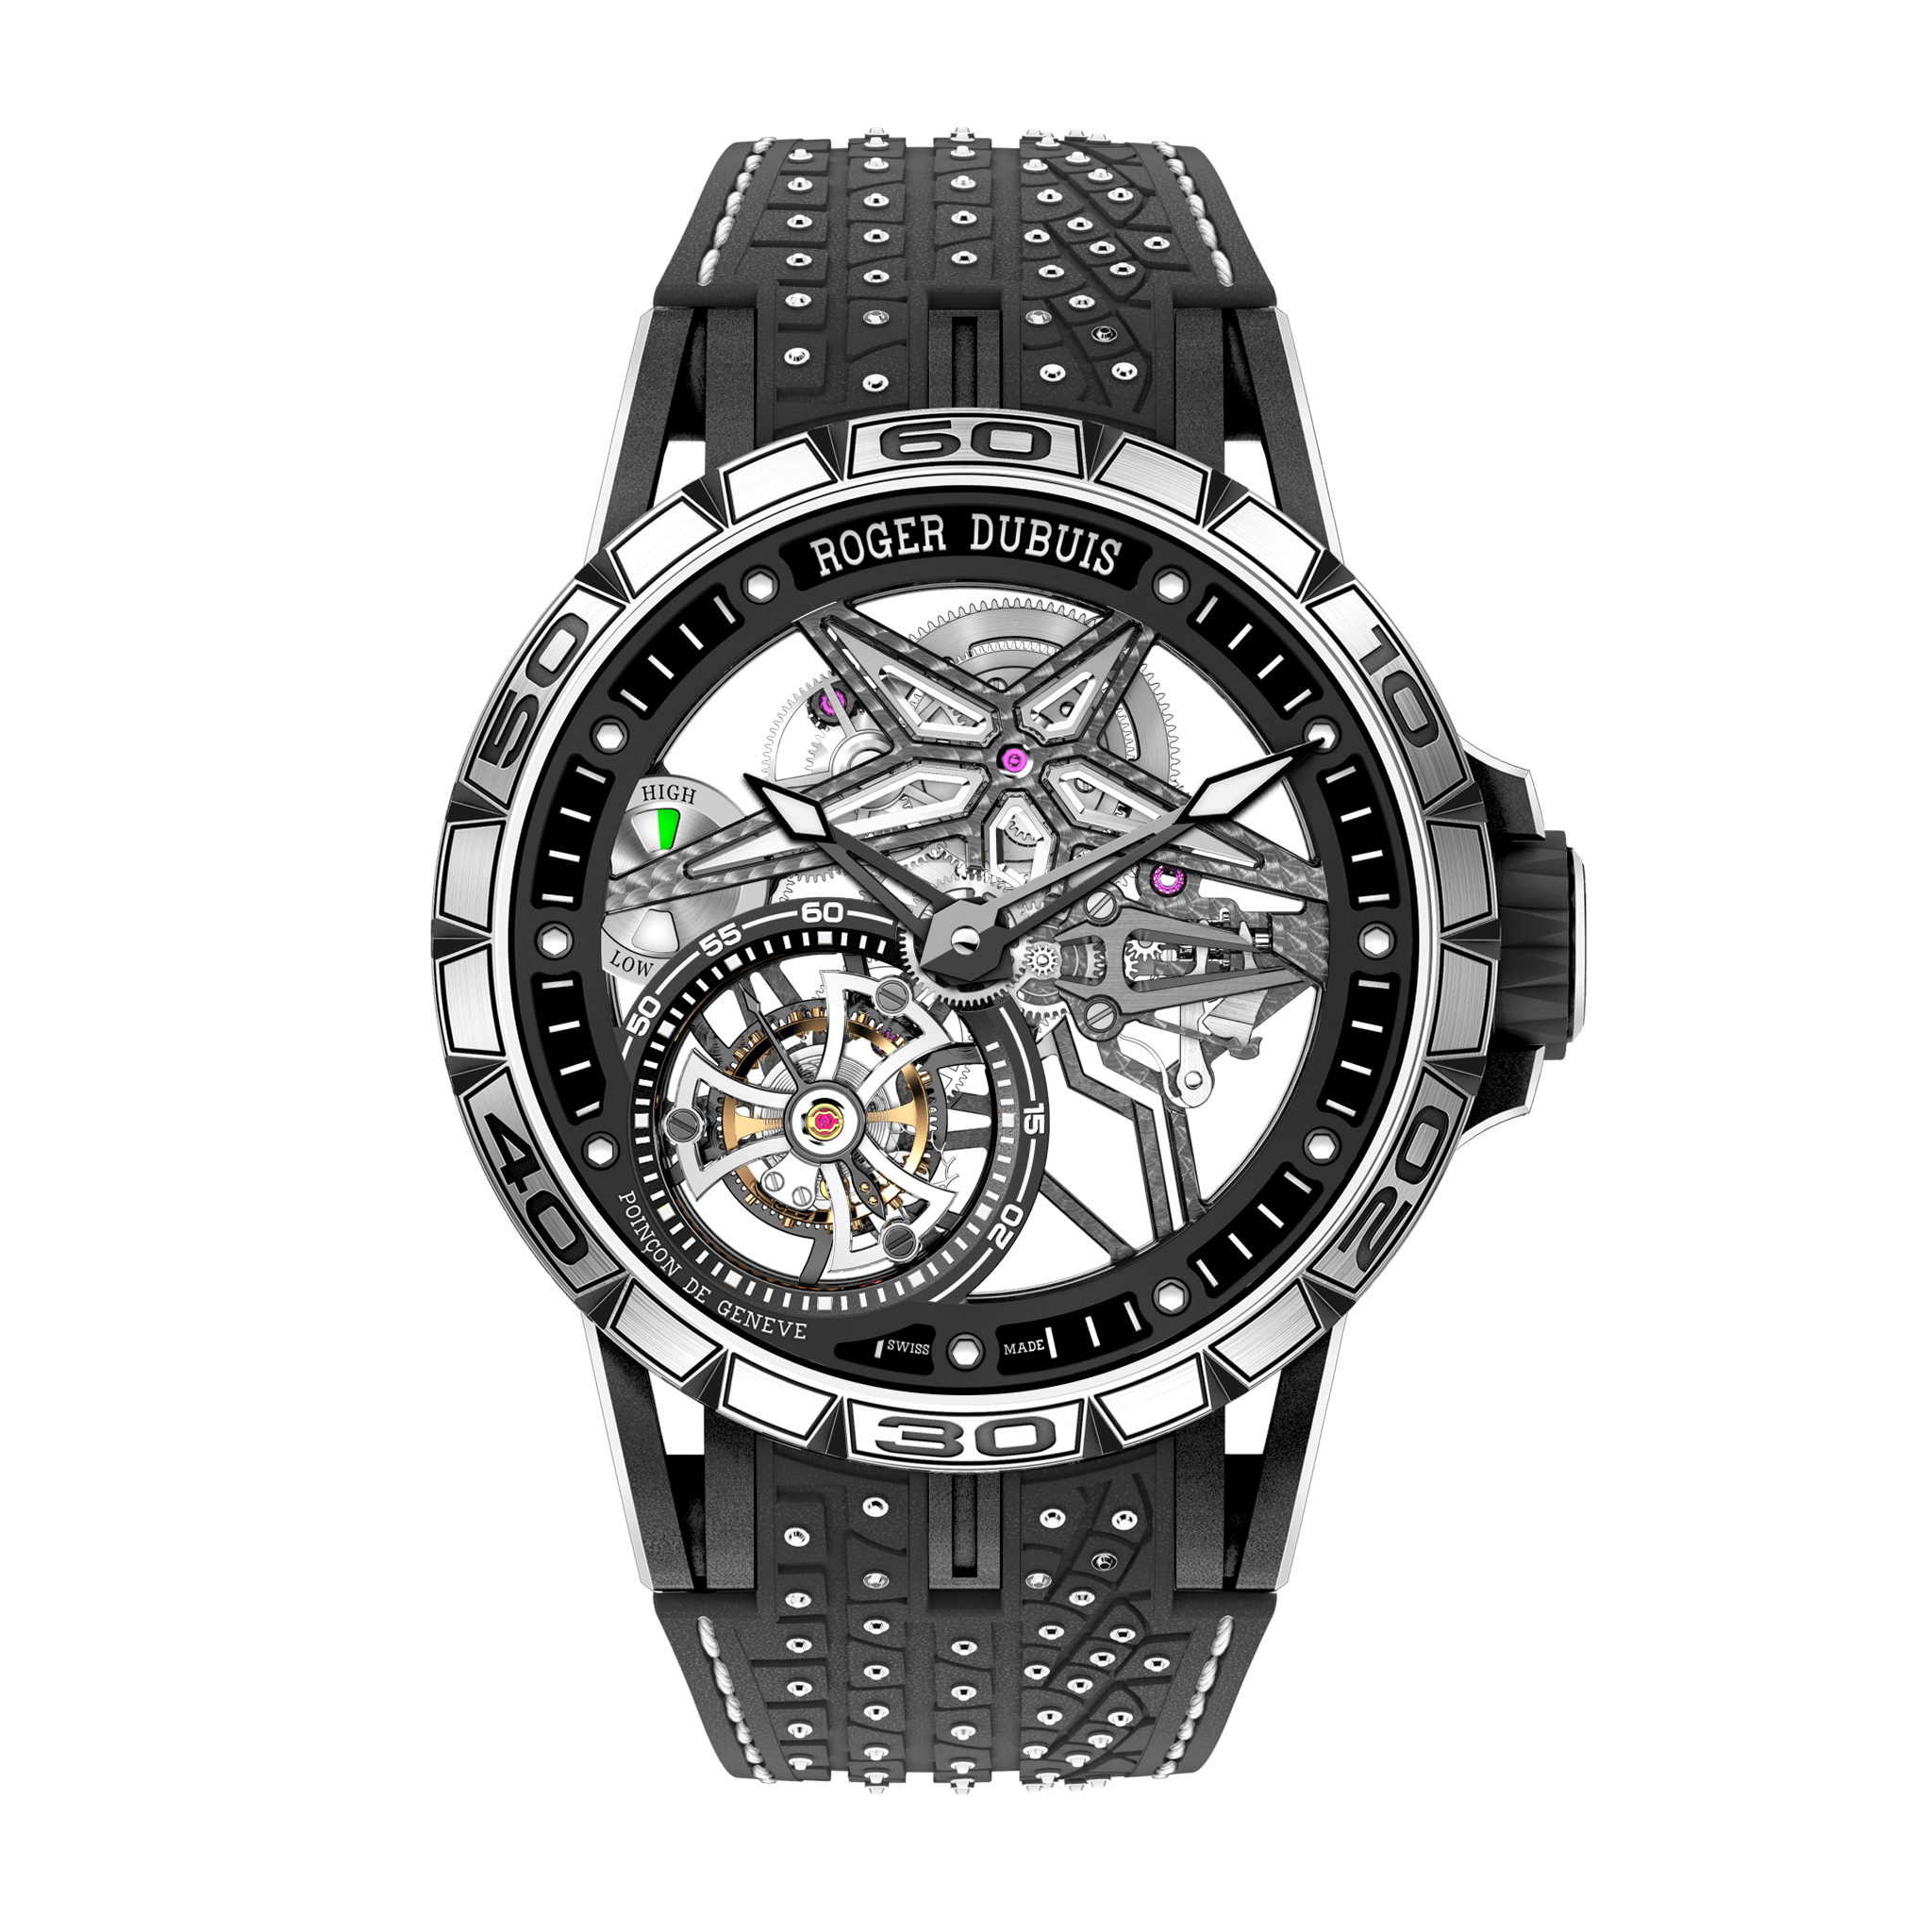 FLYING TOURBILLON PIRELLI